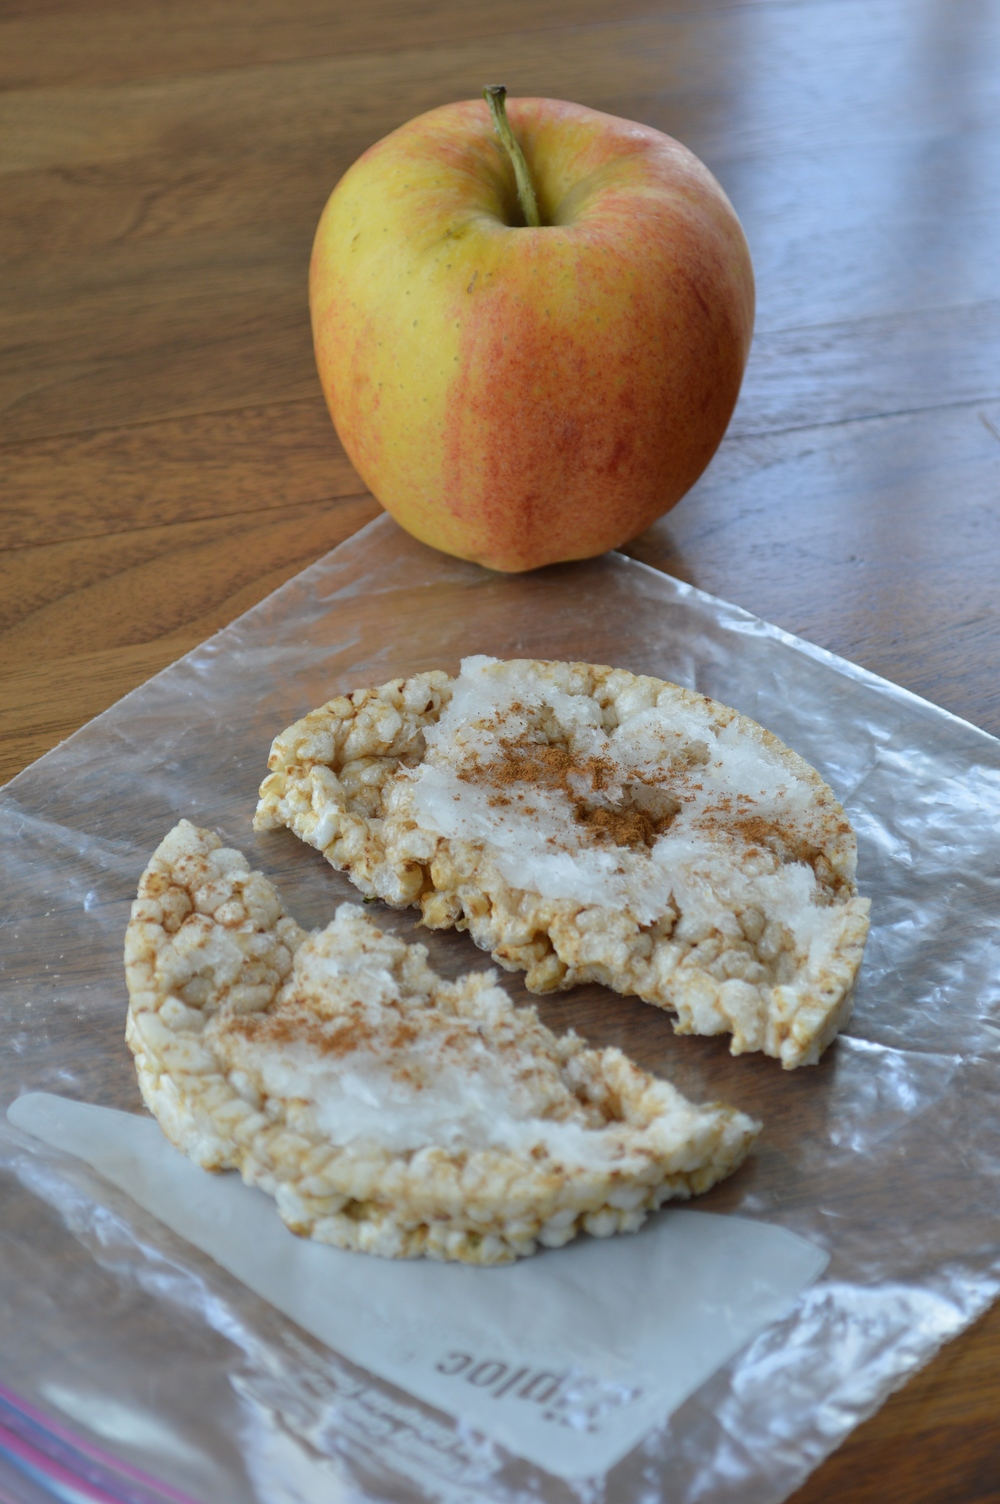 Gala Apple & Rice Cake + Coconut Oil & Cinnamon